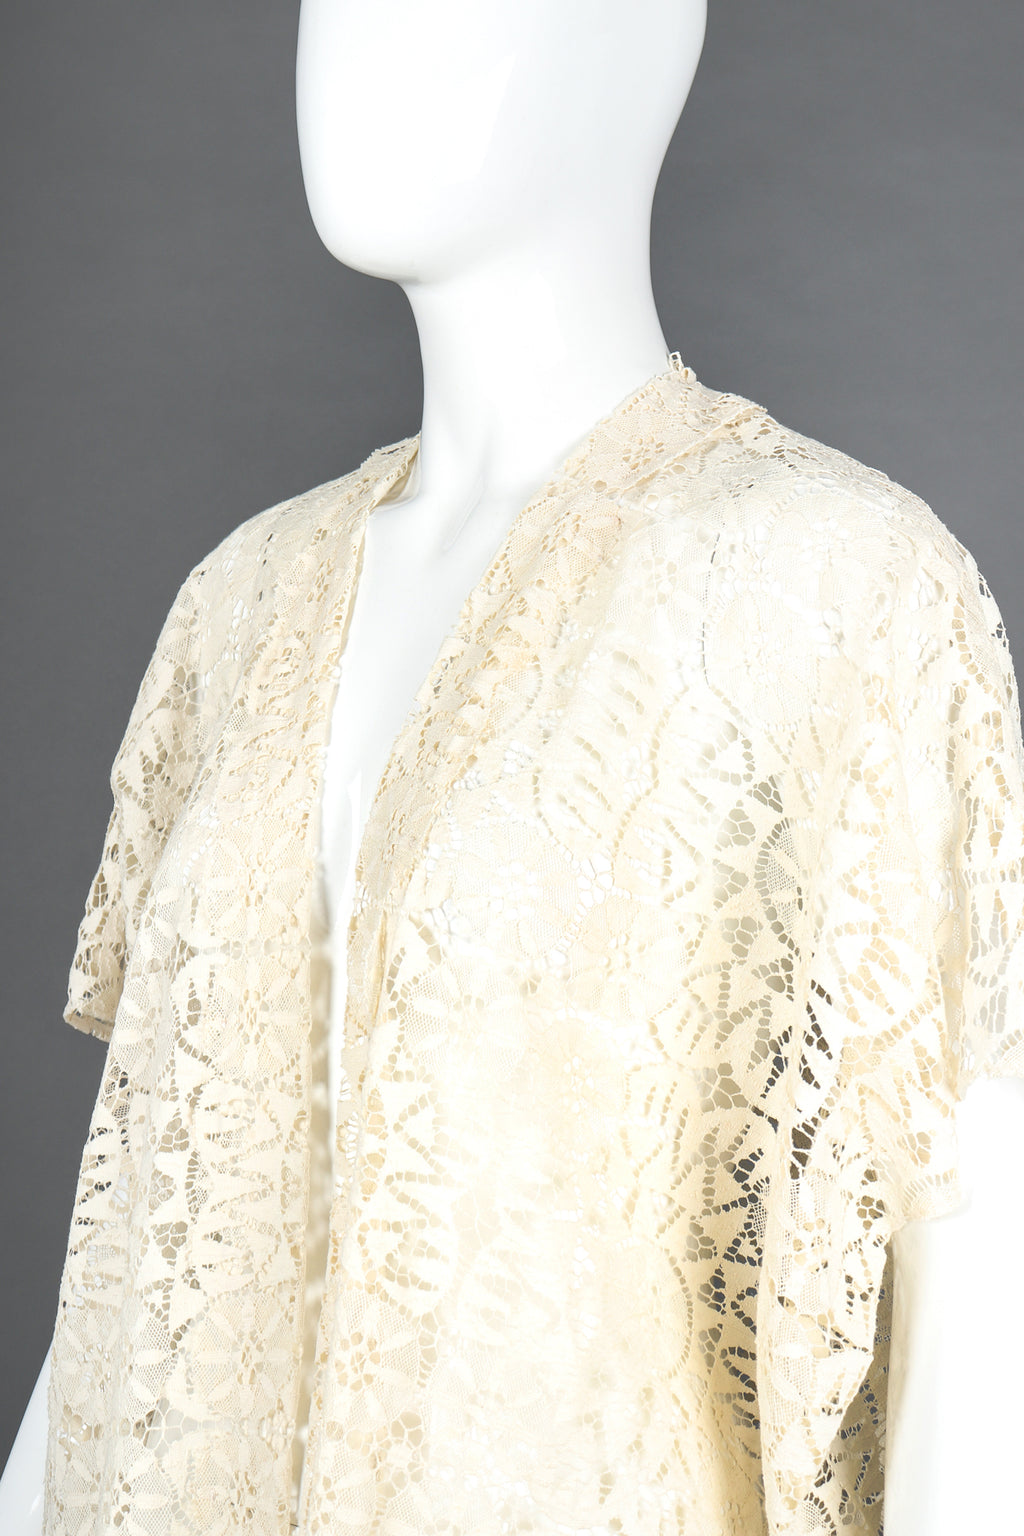 Recess Designer Consignment Vintage Sheer Bobbin Lace KImono Robe Duster Jacket Bridal Wedding Honeymoon Los Angeles Resale